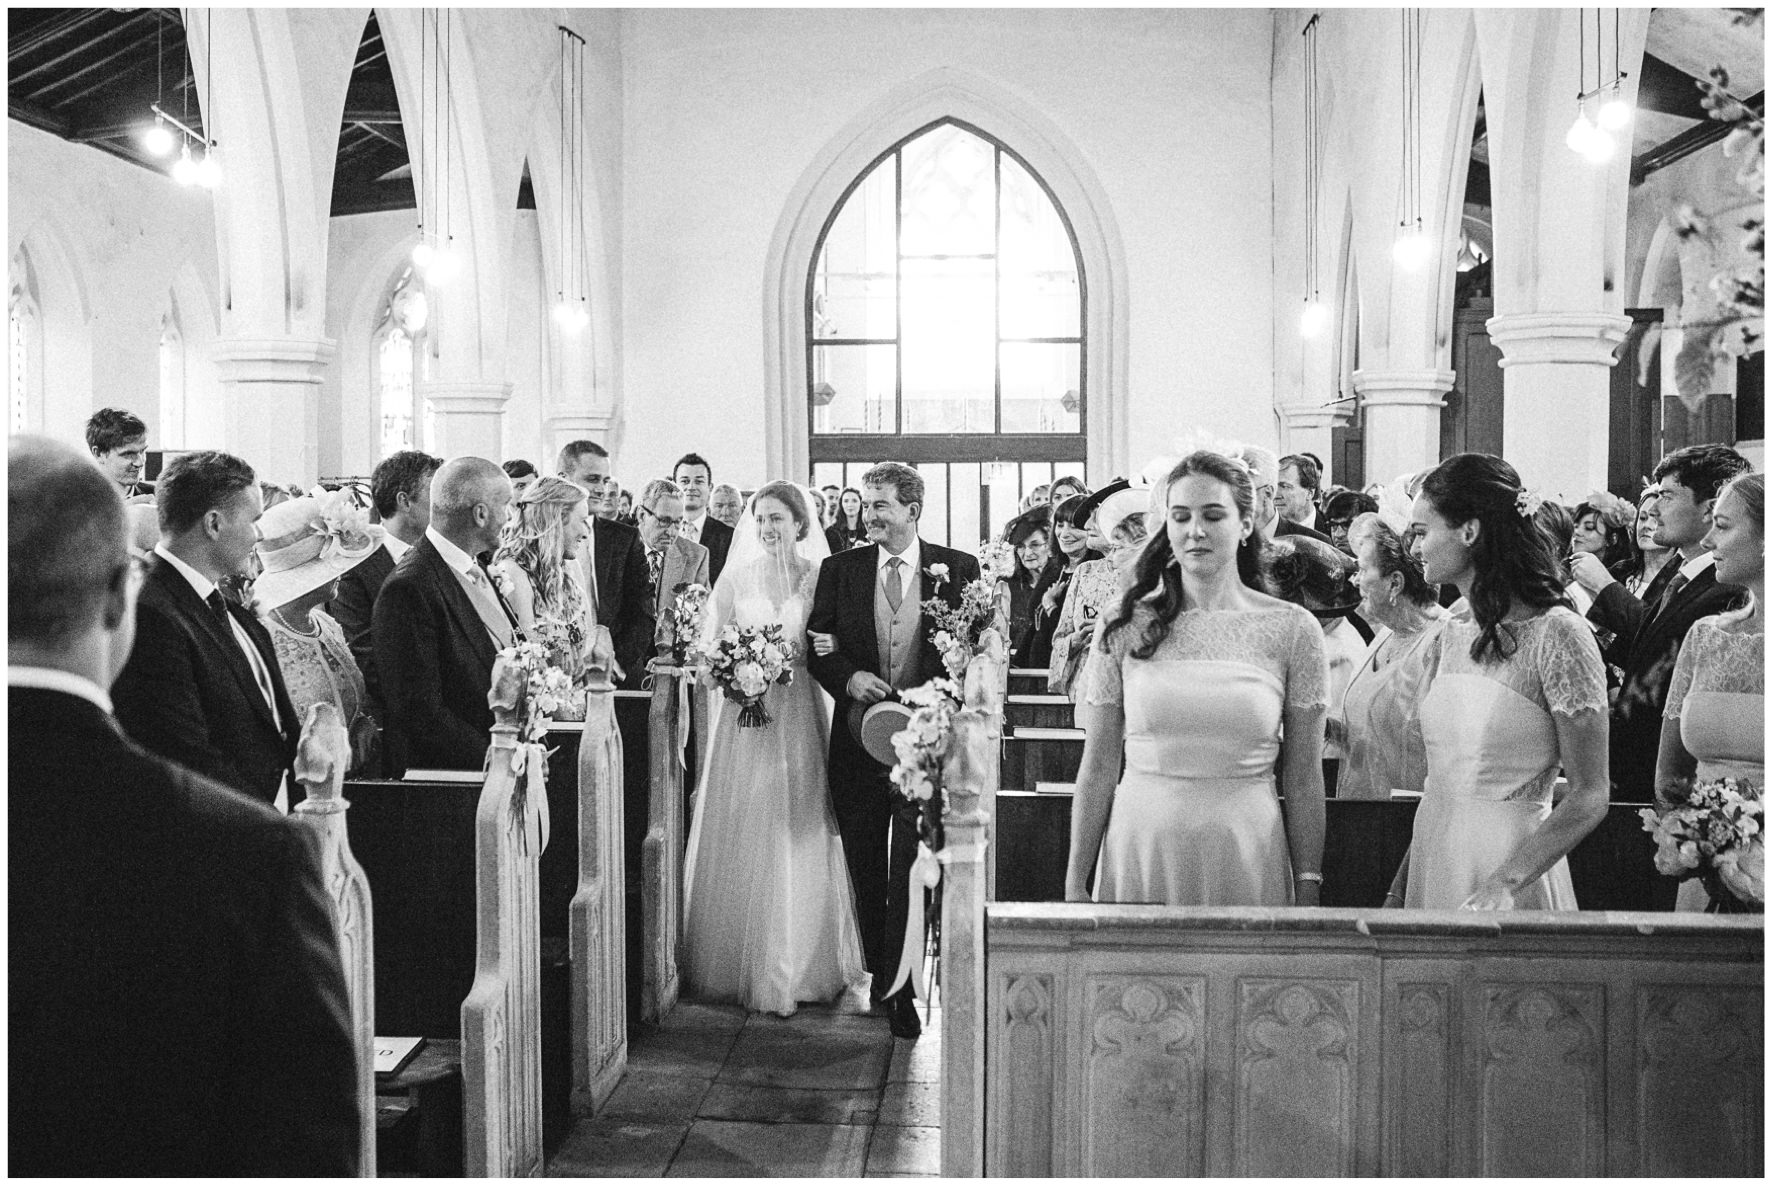 Lucy Davenport Photography, Cornwell Manor, wedding venue, Oxfordshire, Cotswold wedding, Kingham, church wedding, walking down the aisle, bride and father